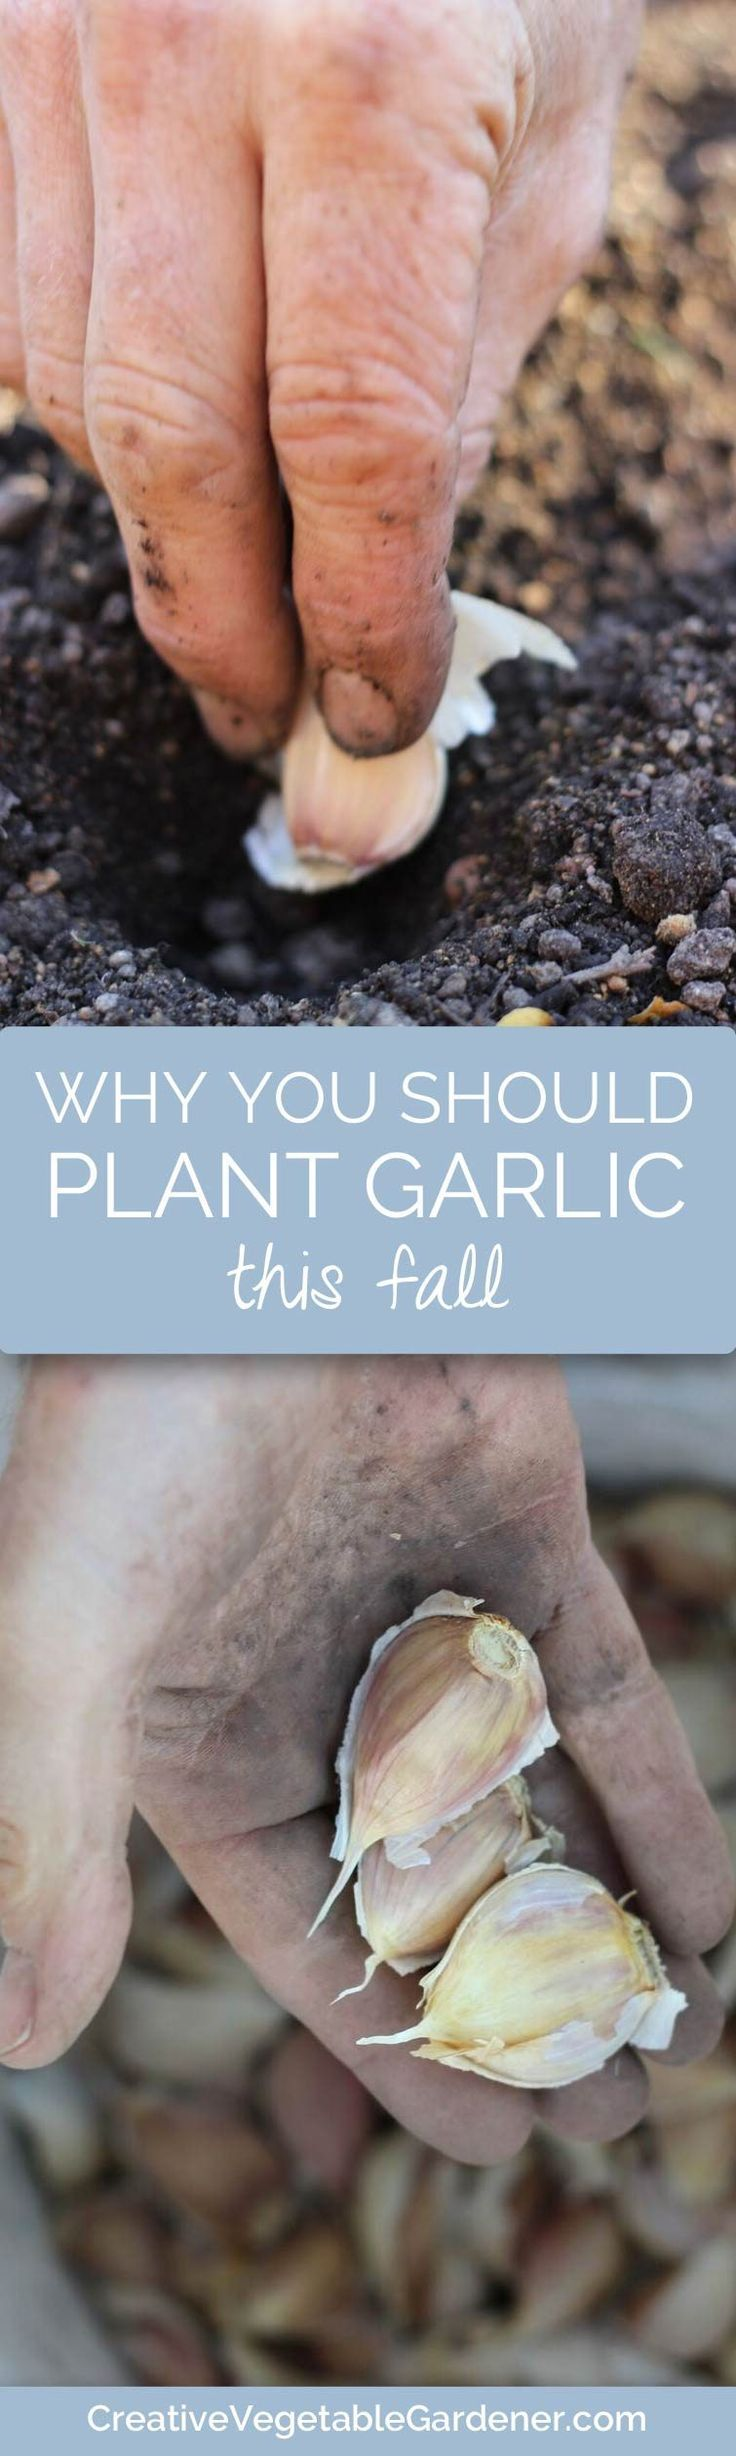 Why You Should Plant Garlic this Fall - Creative Vegetable Gardener